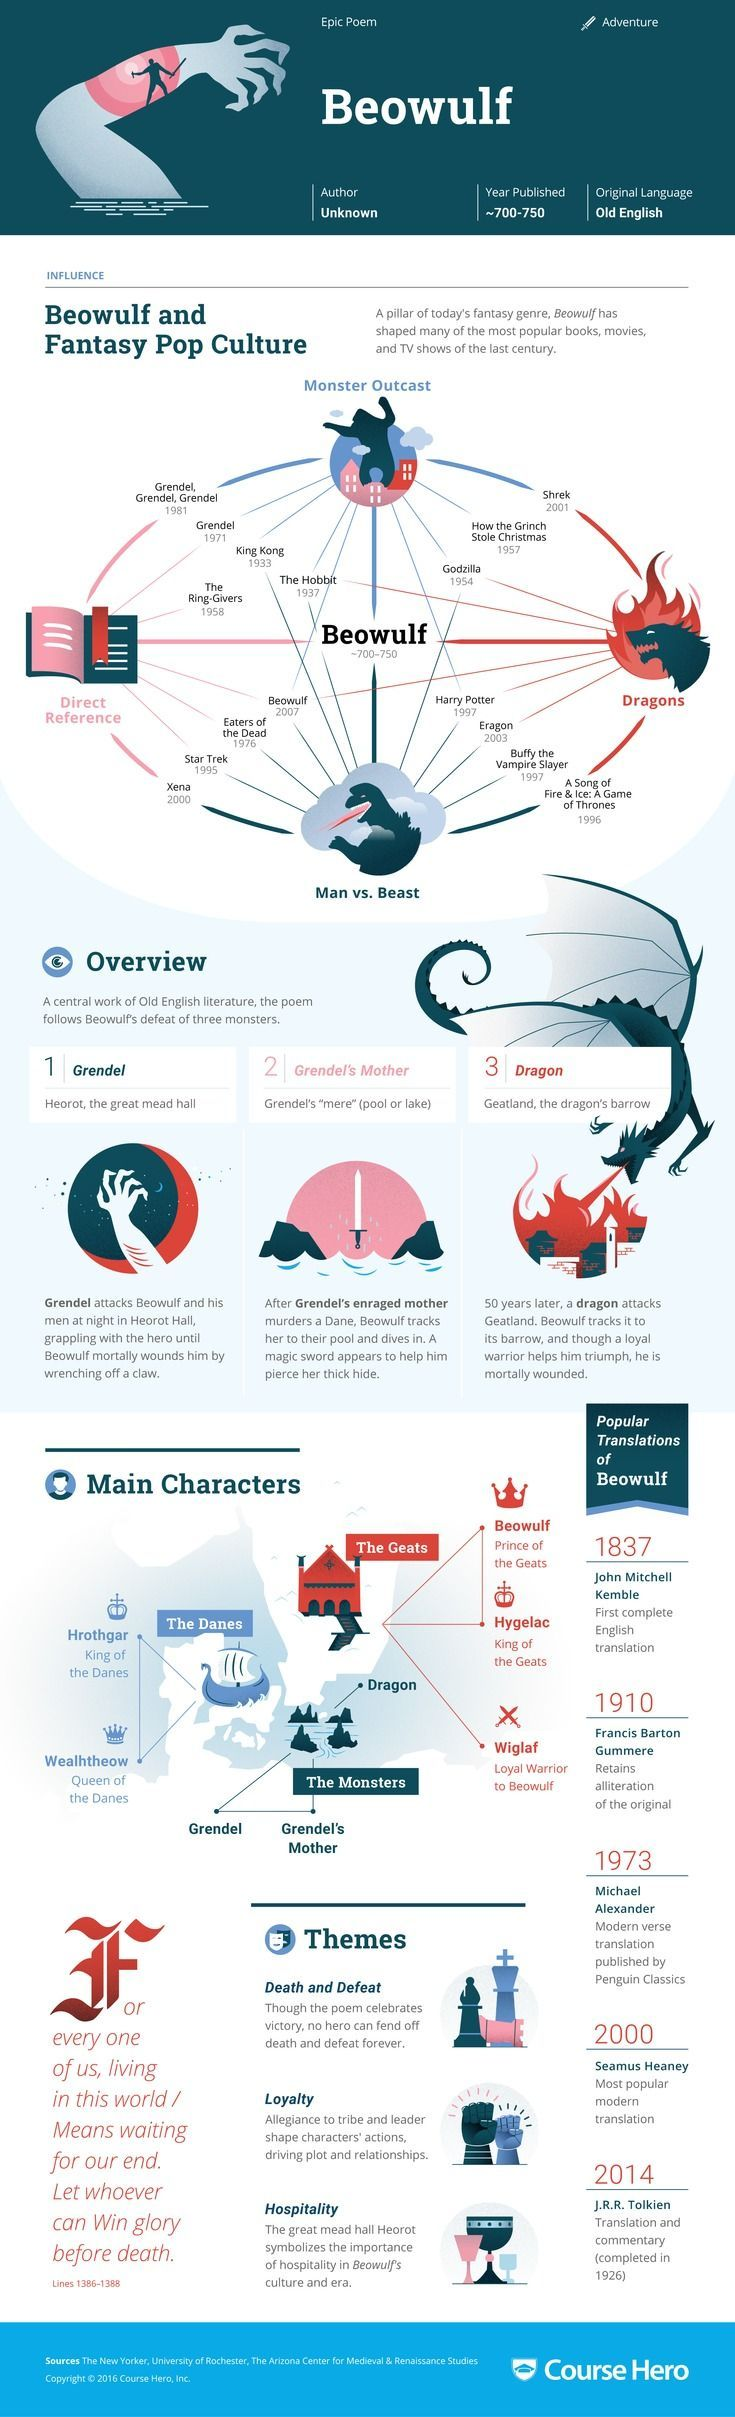 This 'Beowulf' infographic from Course Hero is as awesome as it is helpful. Check it out!